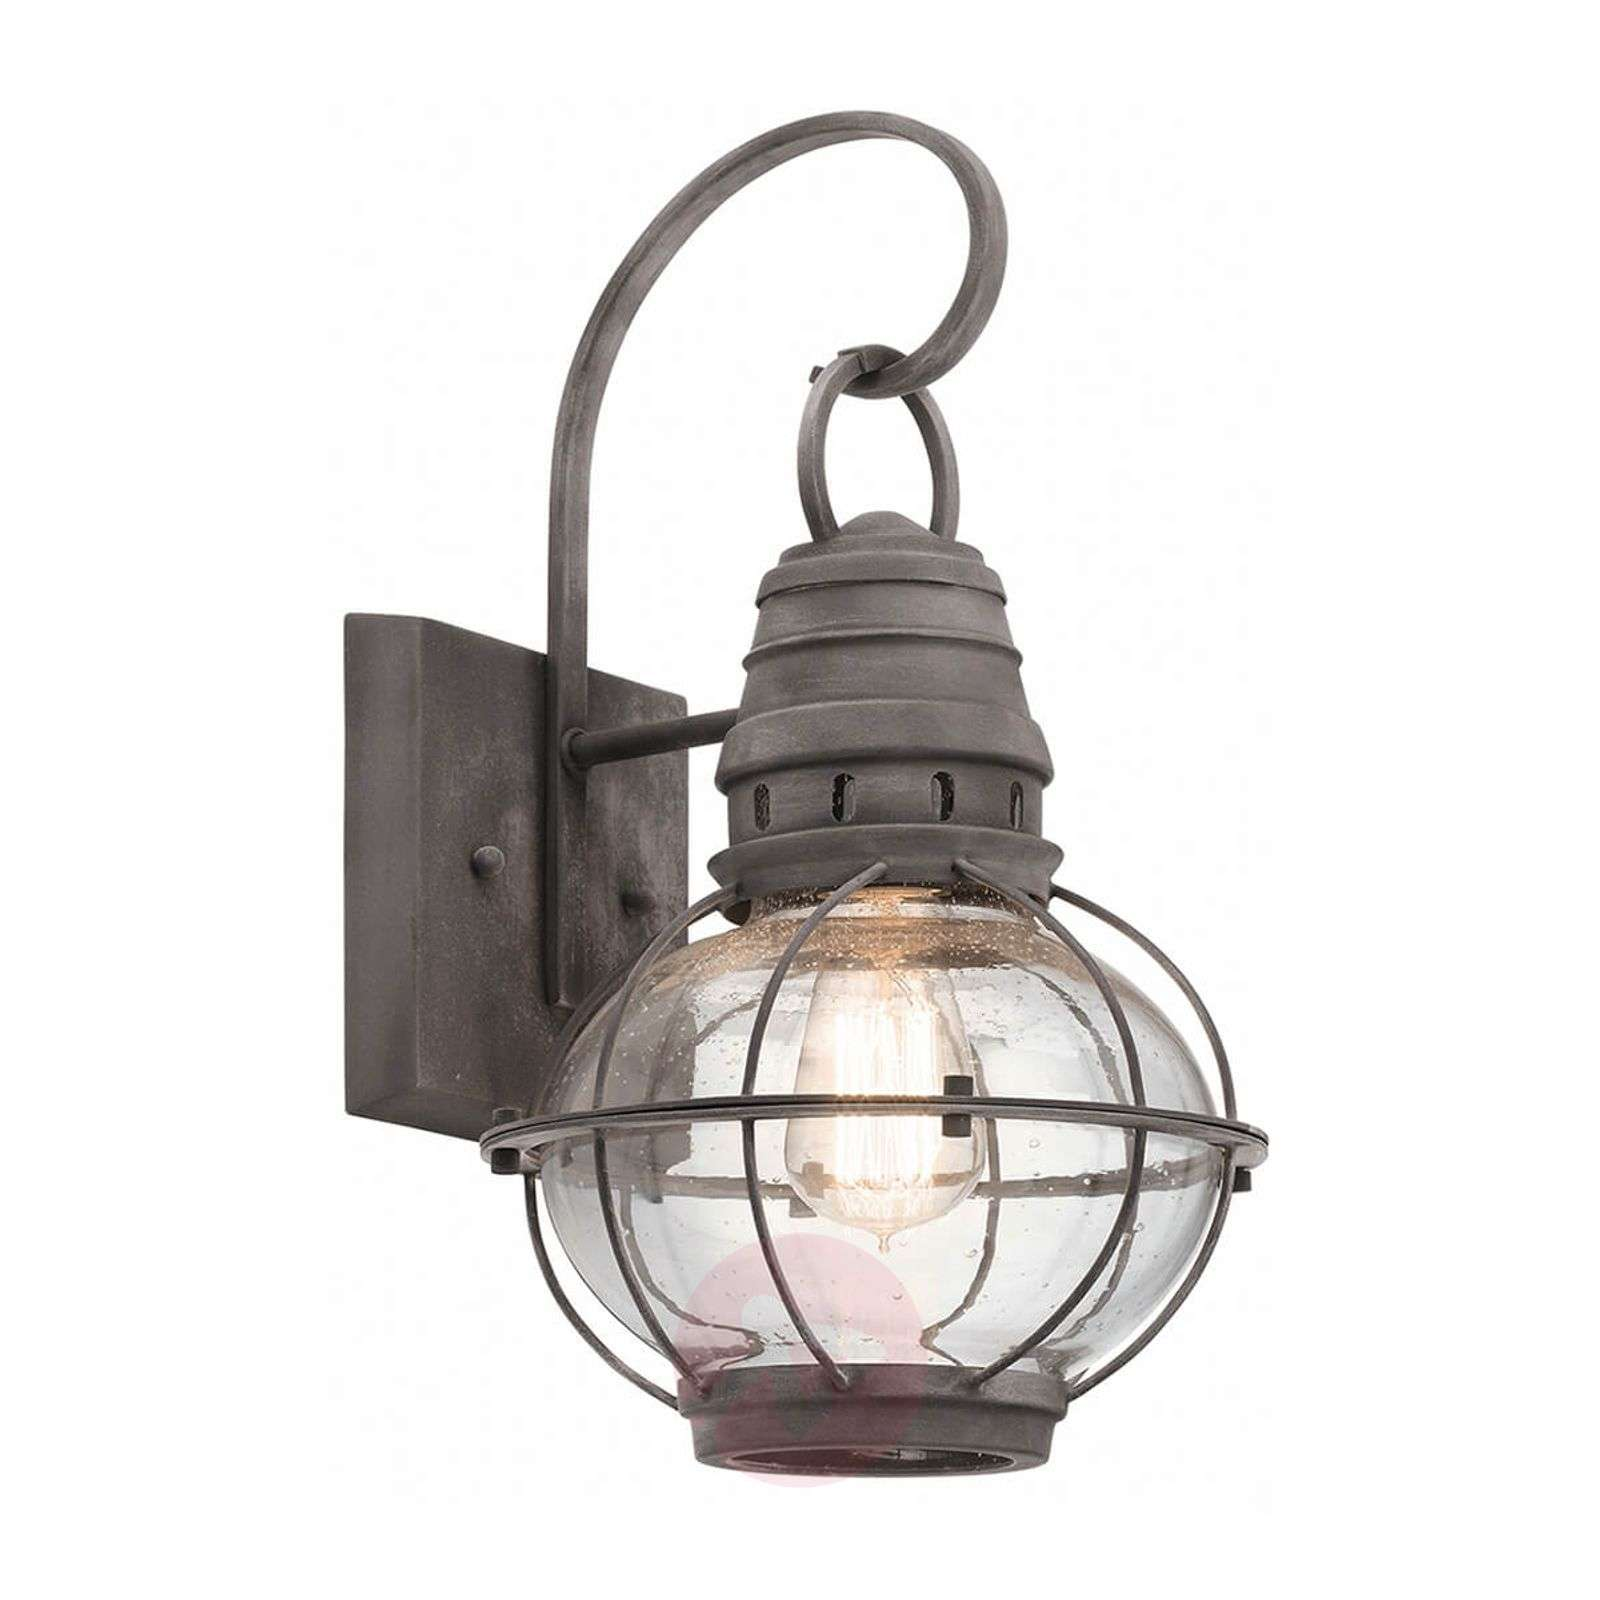 Bridge Point medium outdoor wall lantern-3048843-01